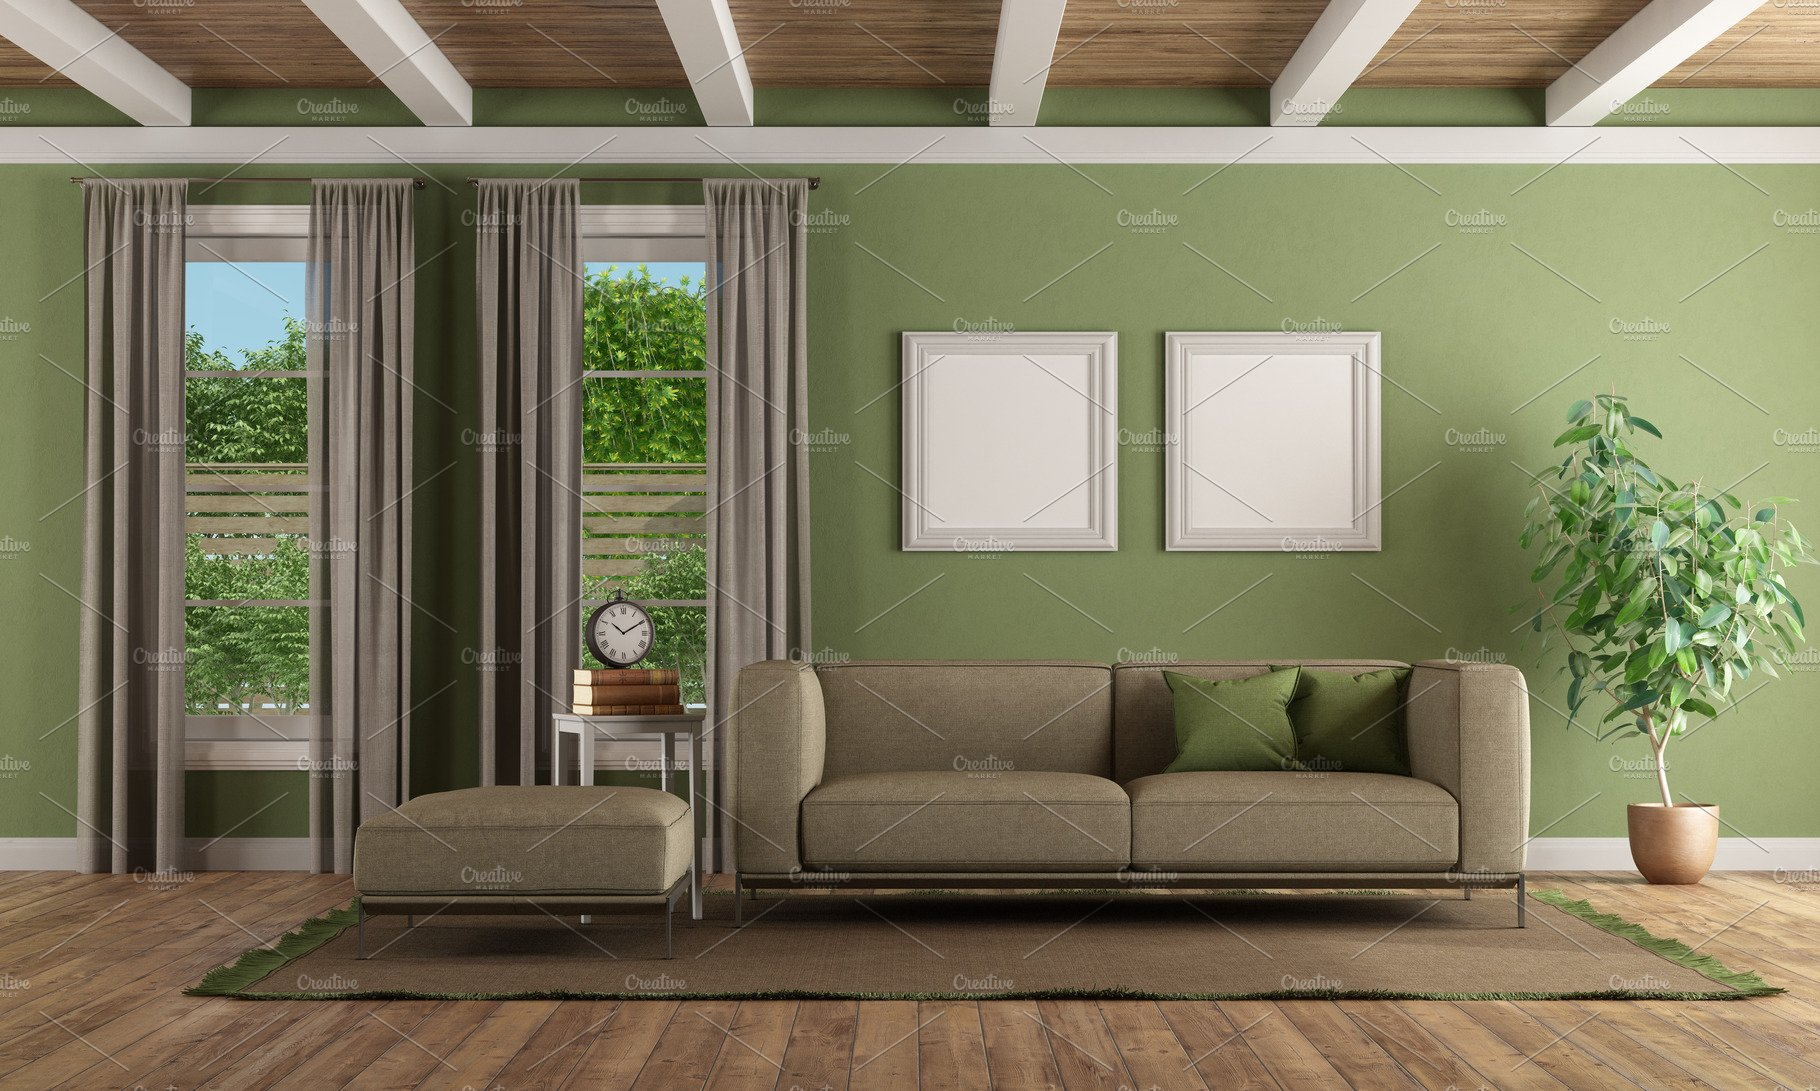 Green Living Room With Modern Sofa A High Quality Architecture Stock Photos Creative Market